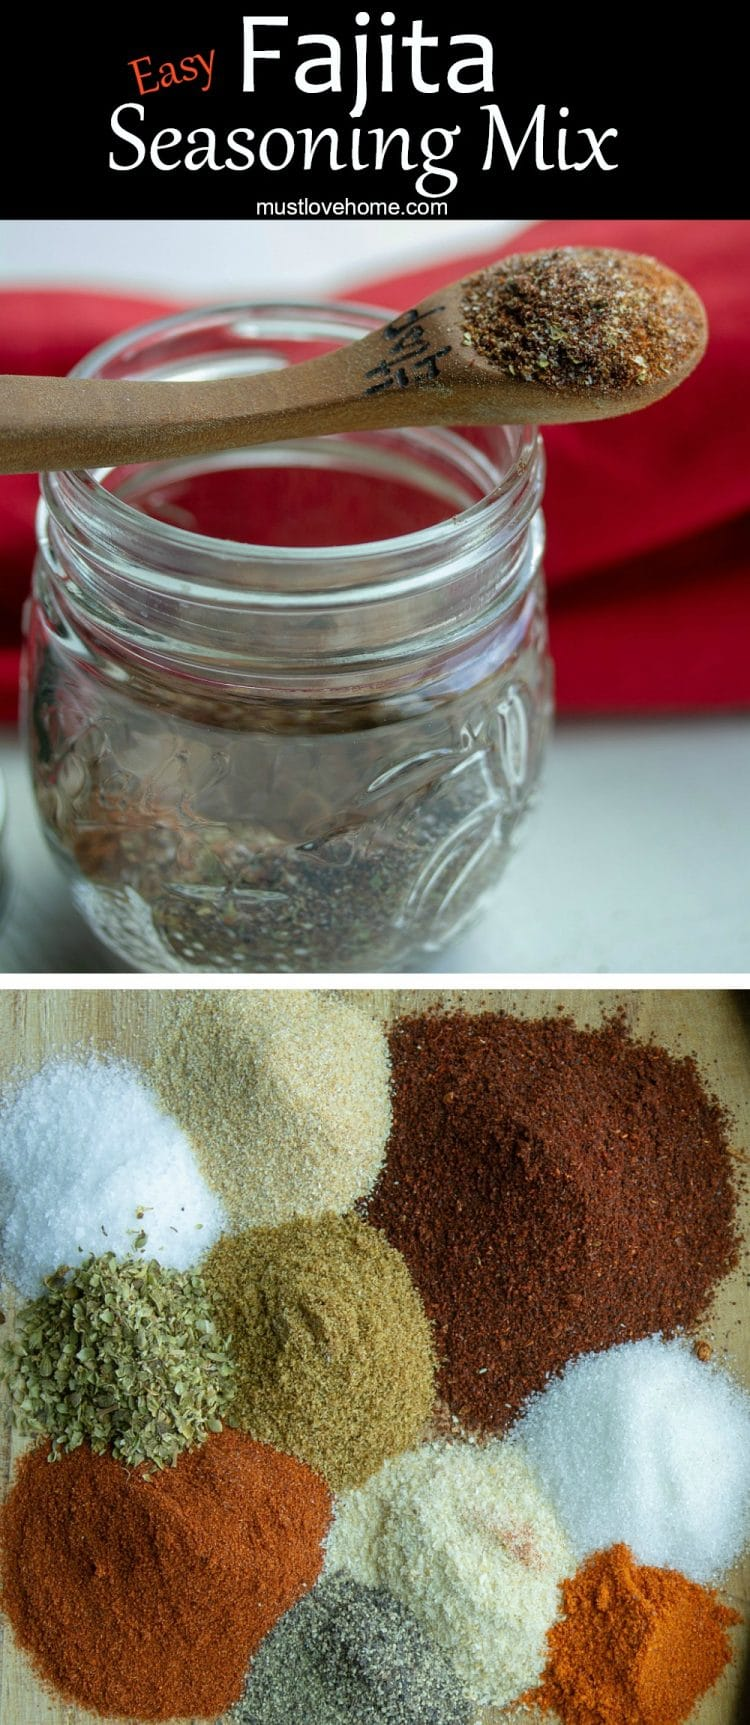 Make your own authentic homemade Fajita Seasoning Mix using this easy recipe and common pantry spices. Great for vegetables too!